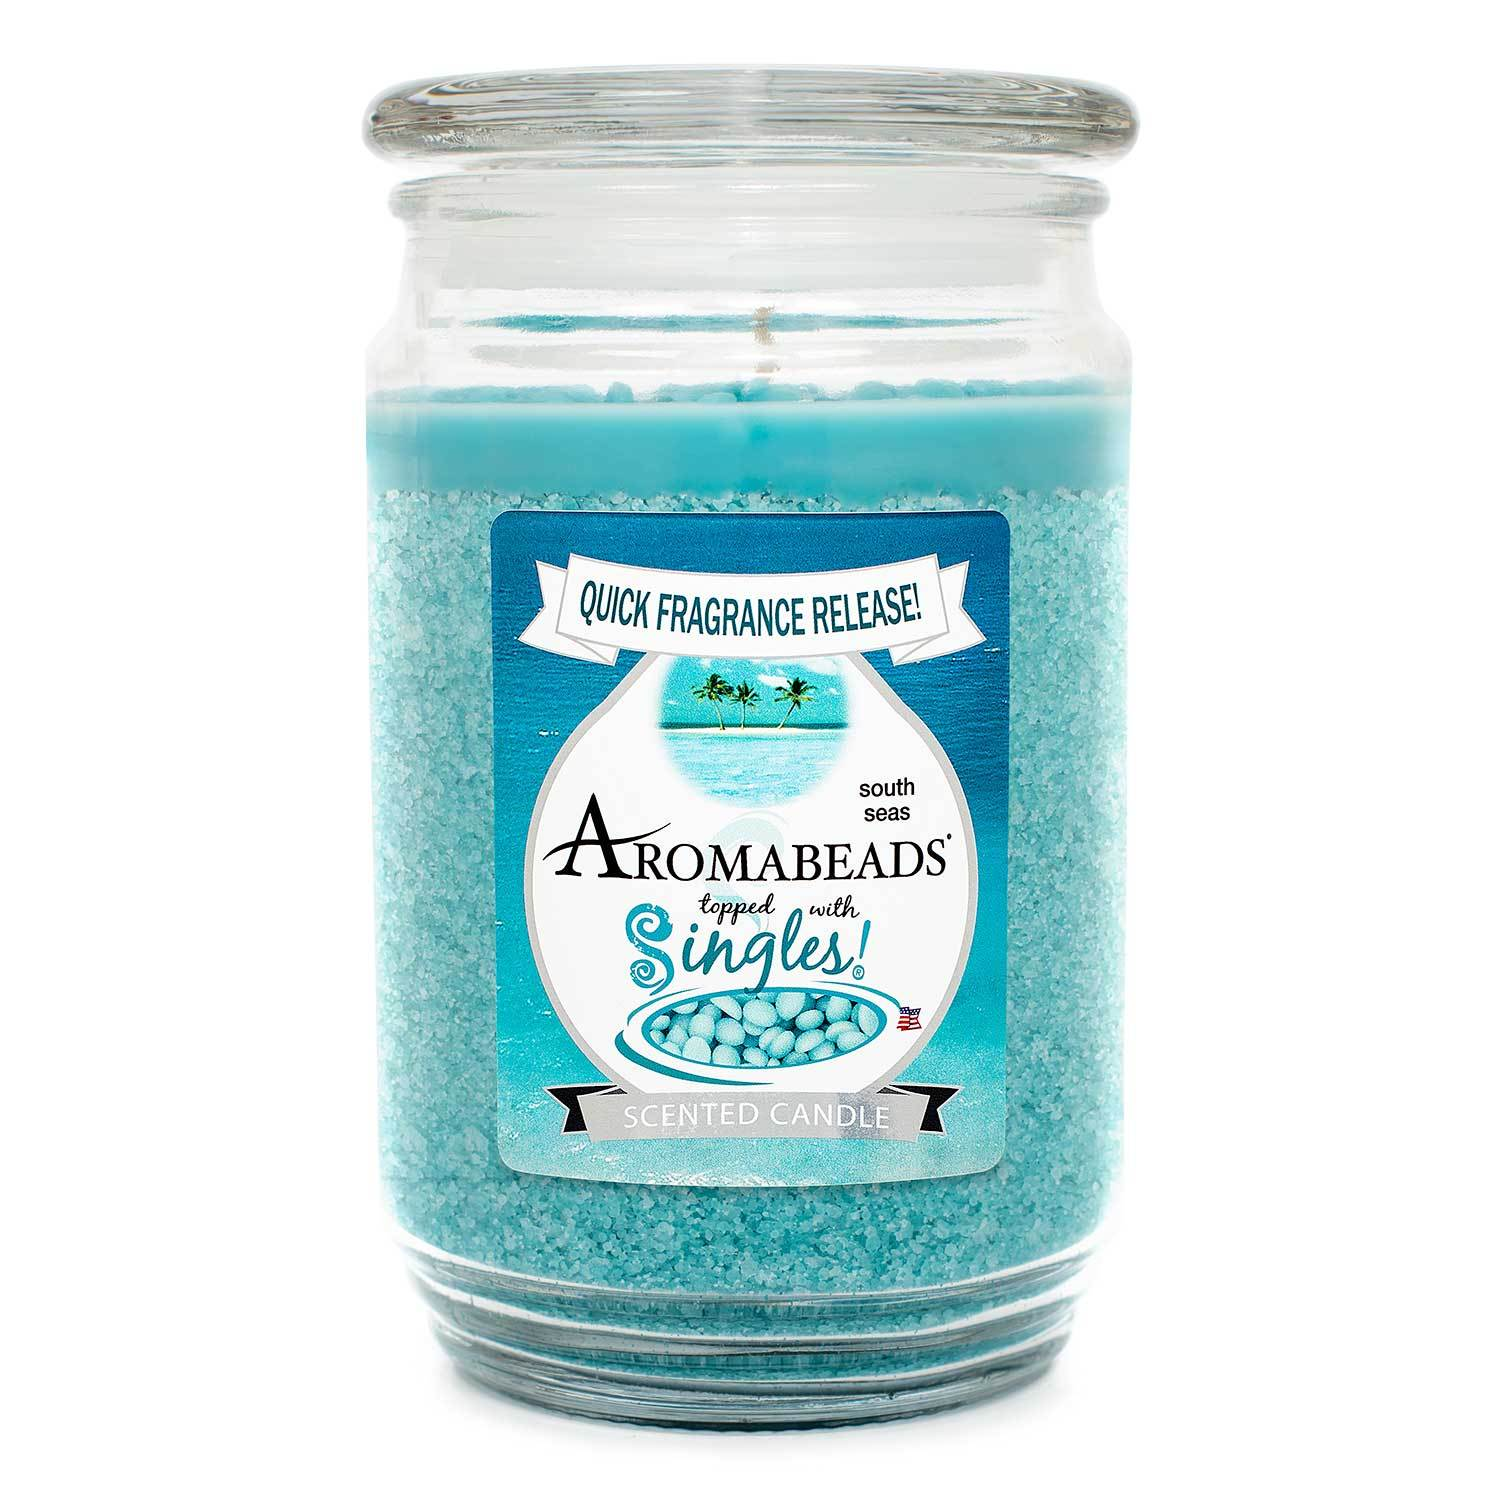 Aromabeads South Seas Scented Candle